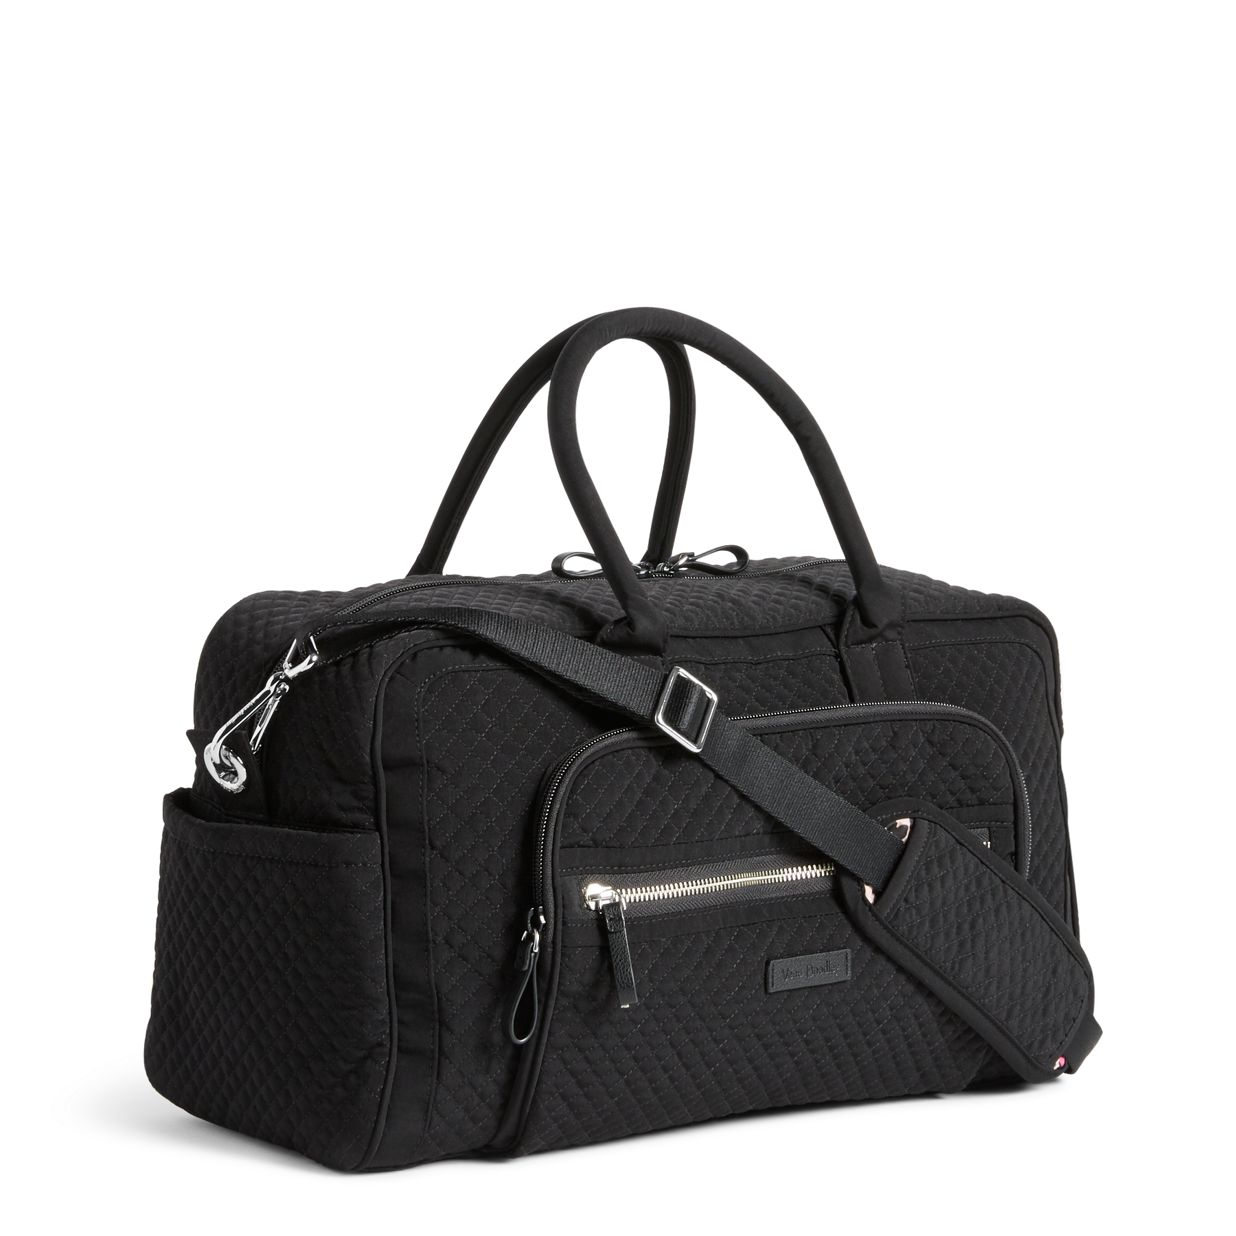 3253dc1d0 ... Image of Iconic Compact Weekender Travel Bag in Classic Black ...